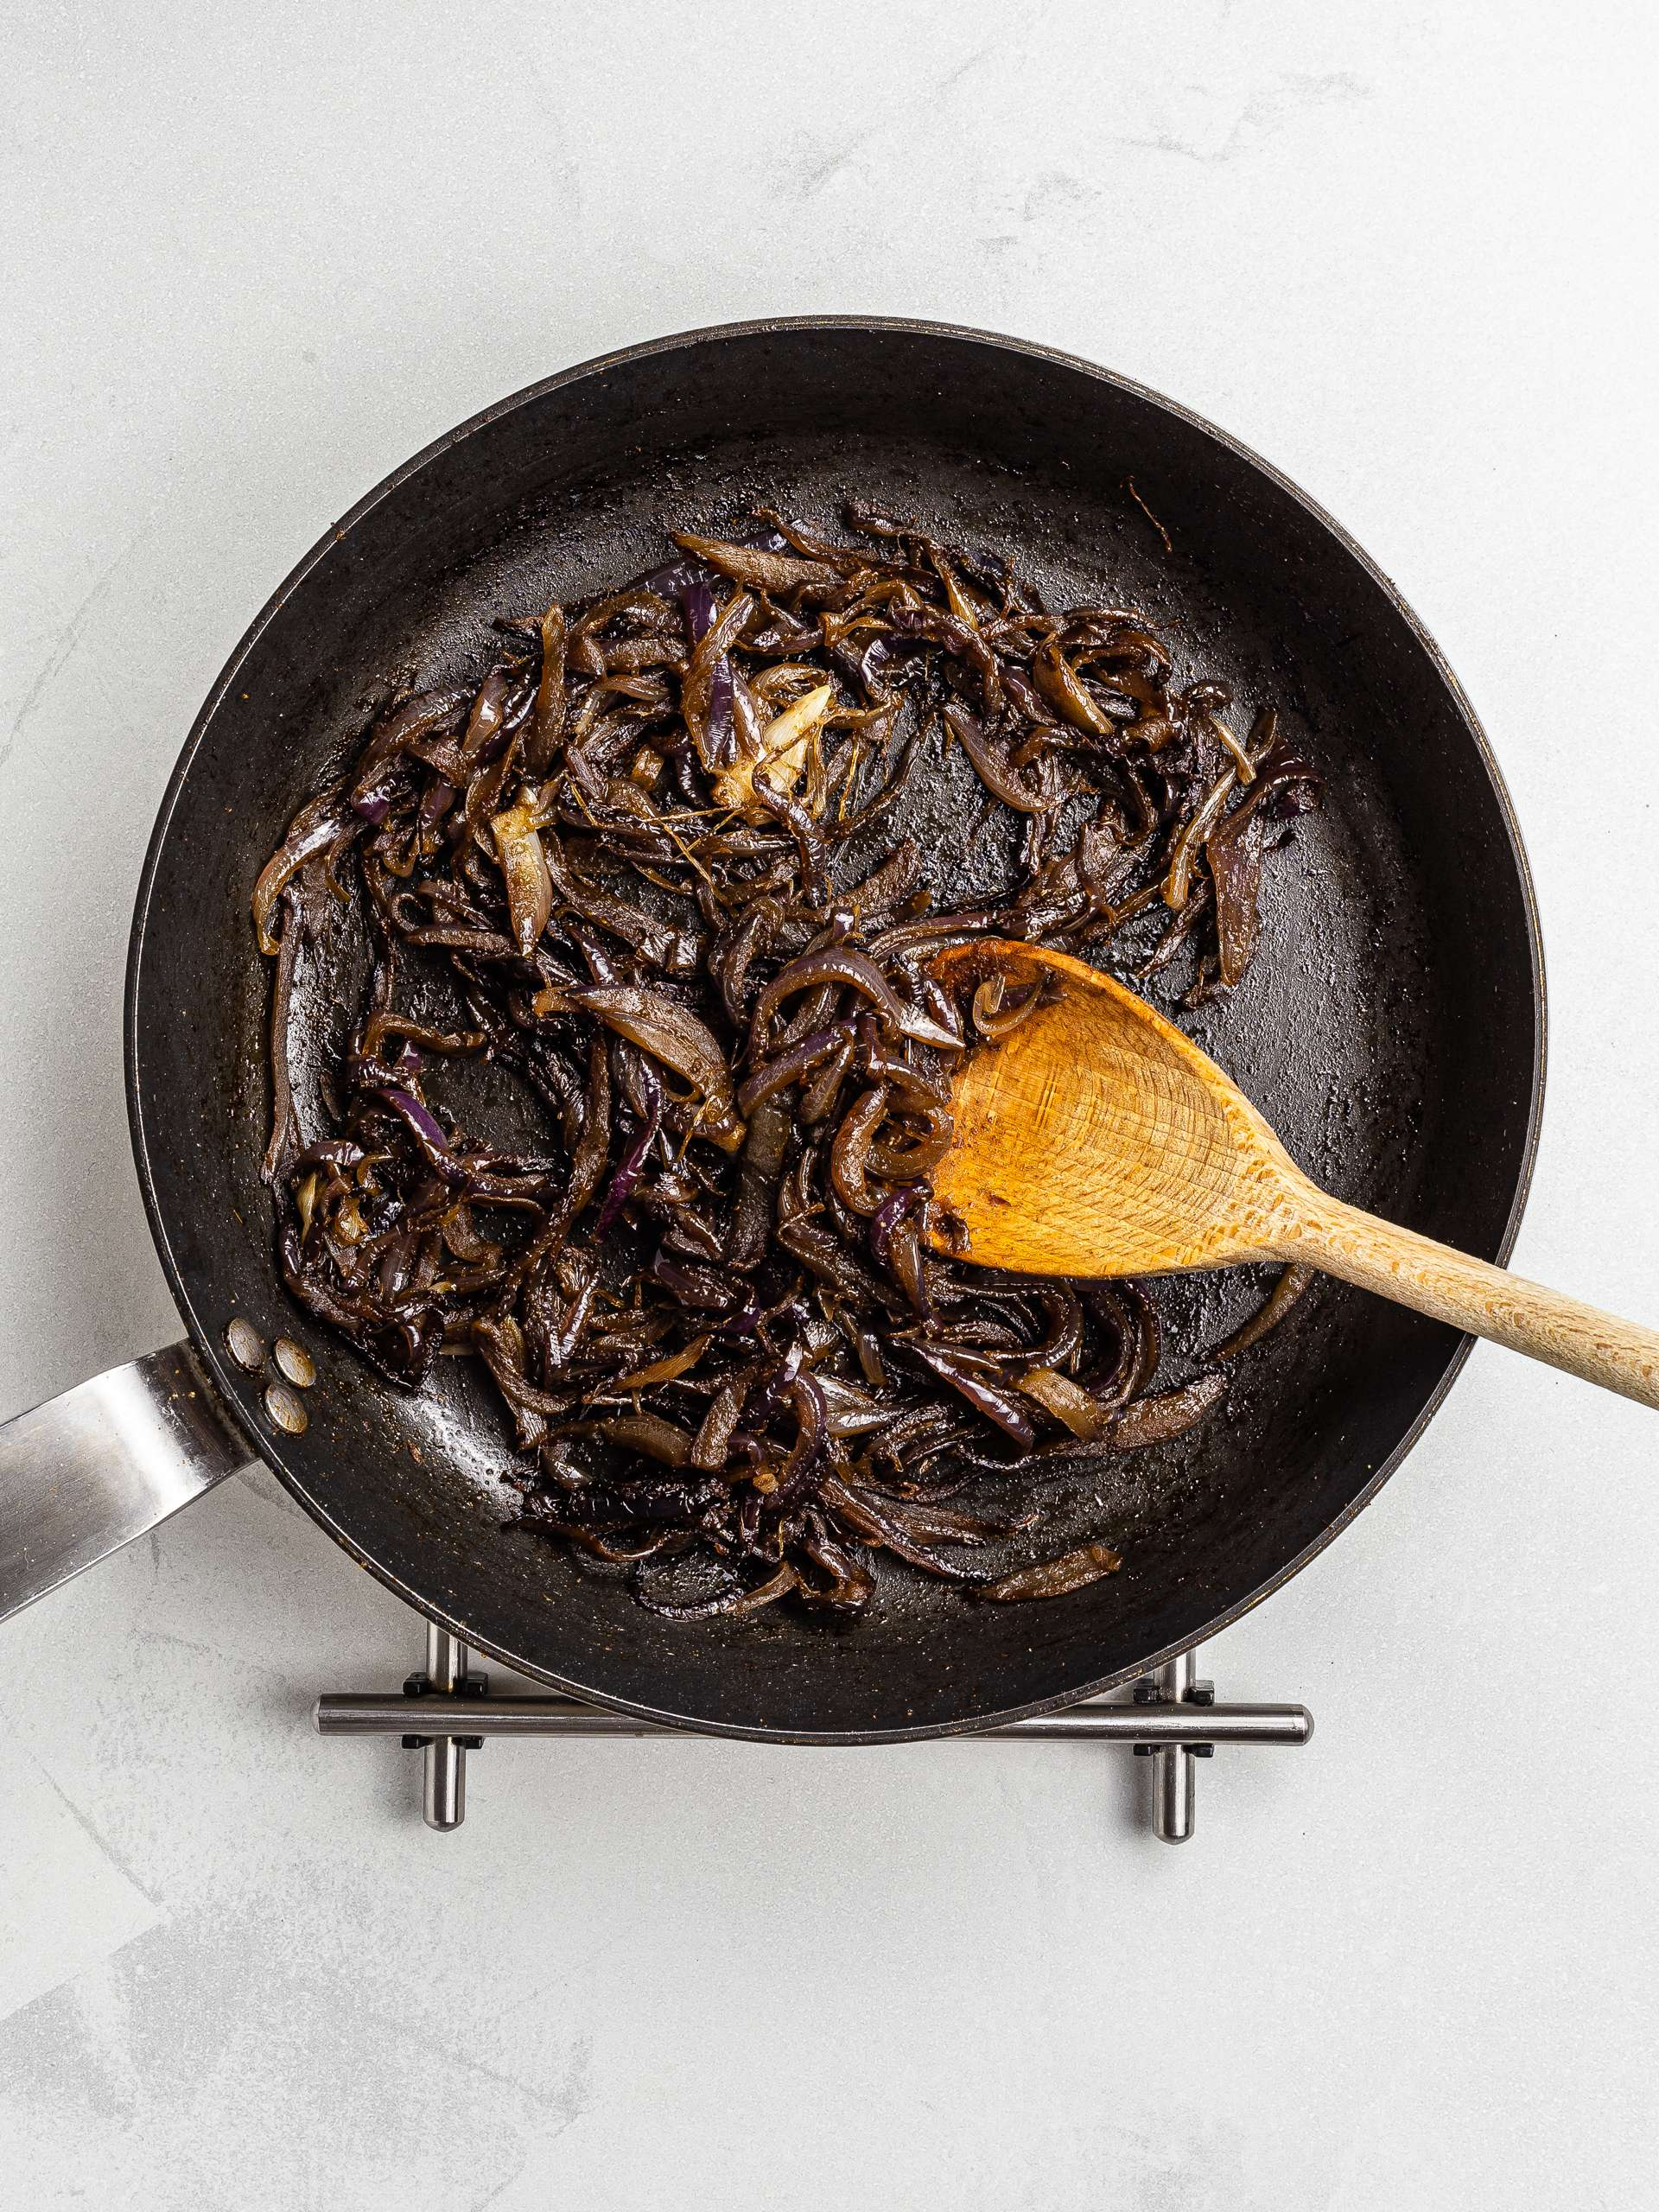 caramelised onions in a skillet